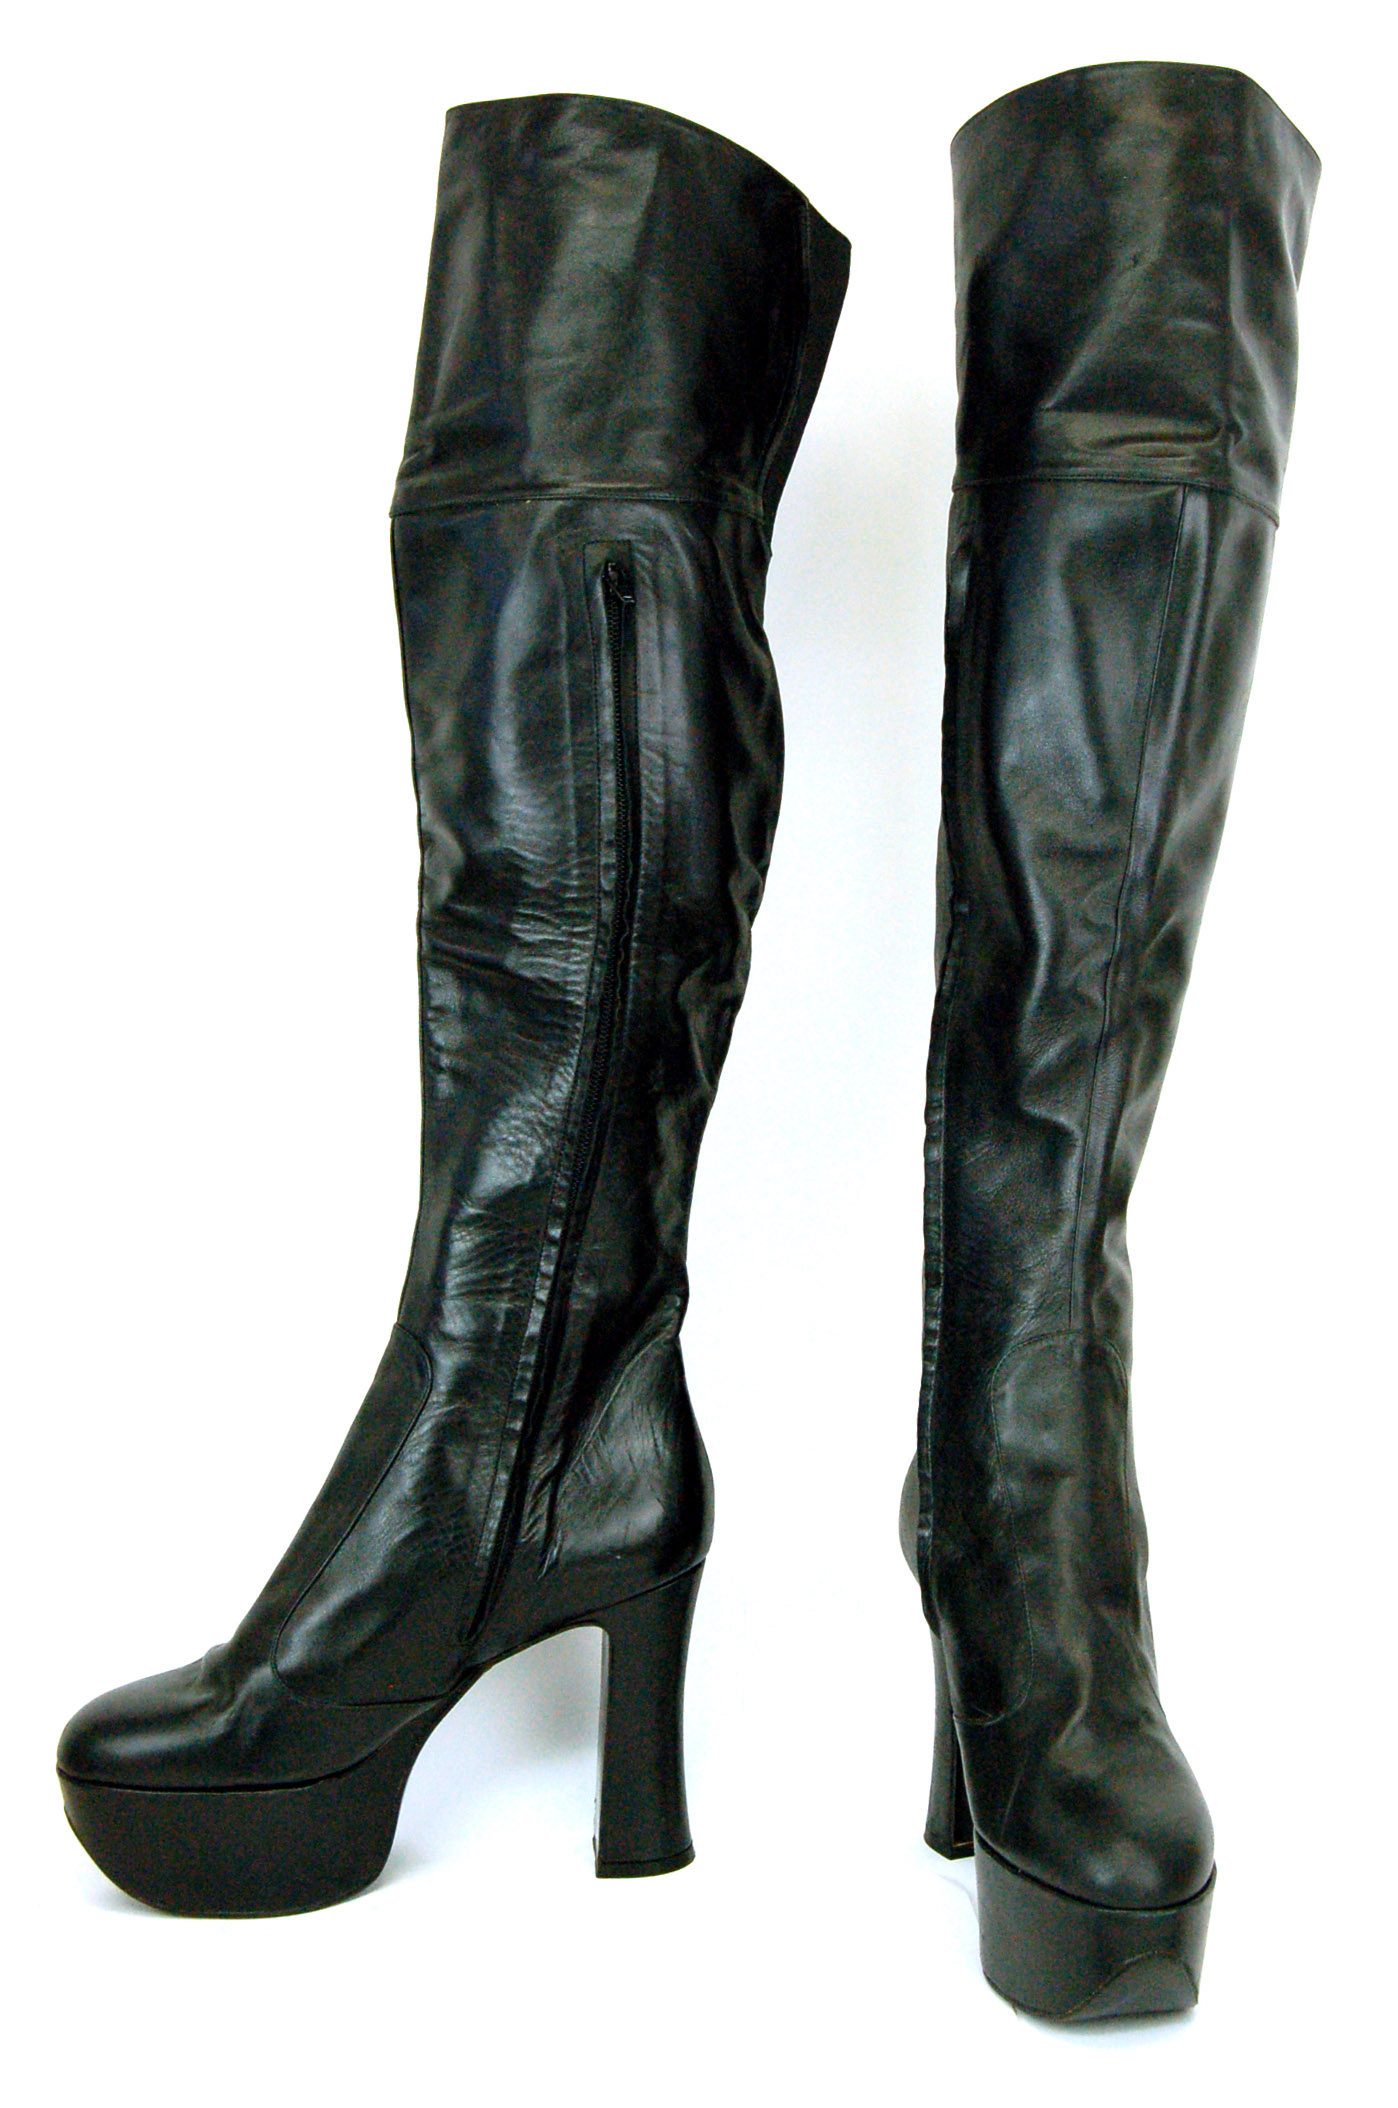 ad181f7659d11 Women s Vero Cuoio Leather Boots - Made in Italy